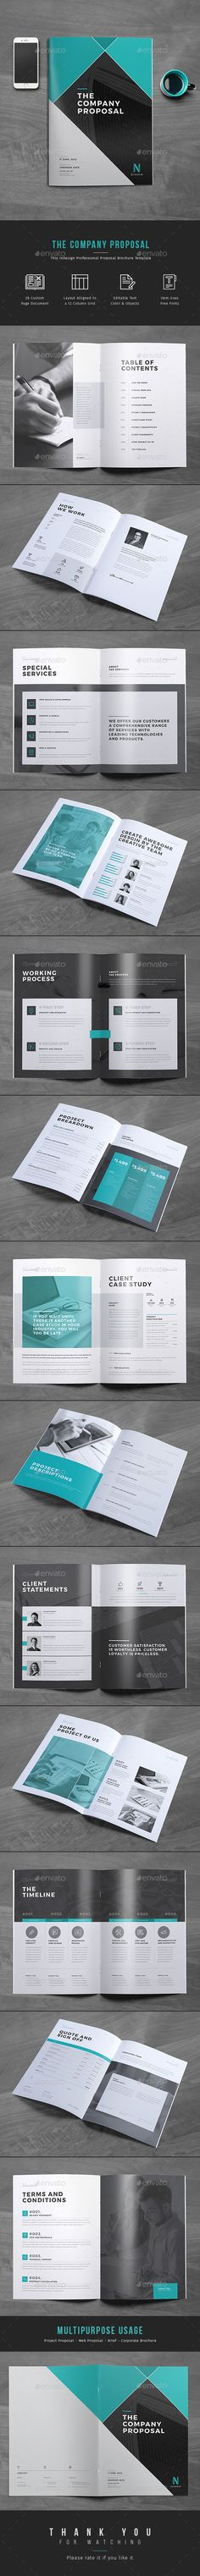 Business Plan Business planning, Stationery design and Proposals - company plan template